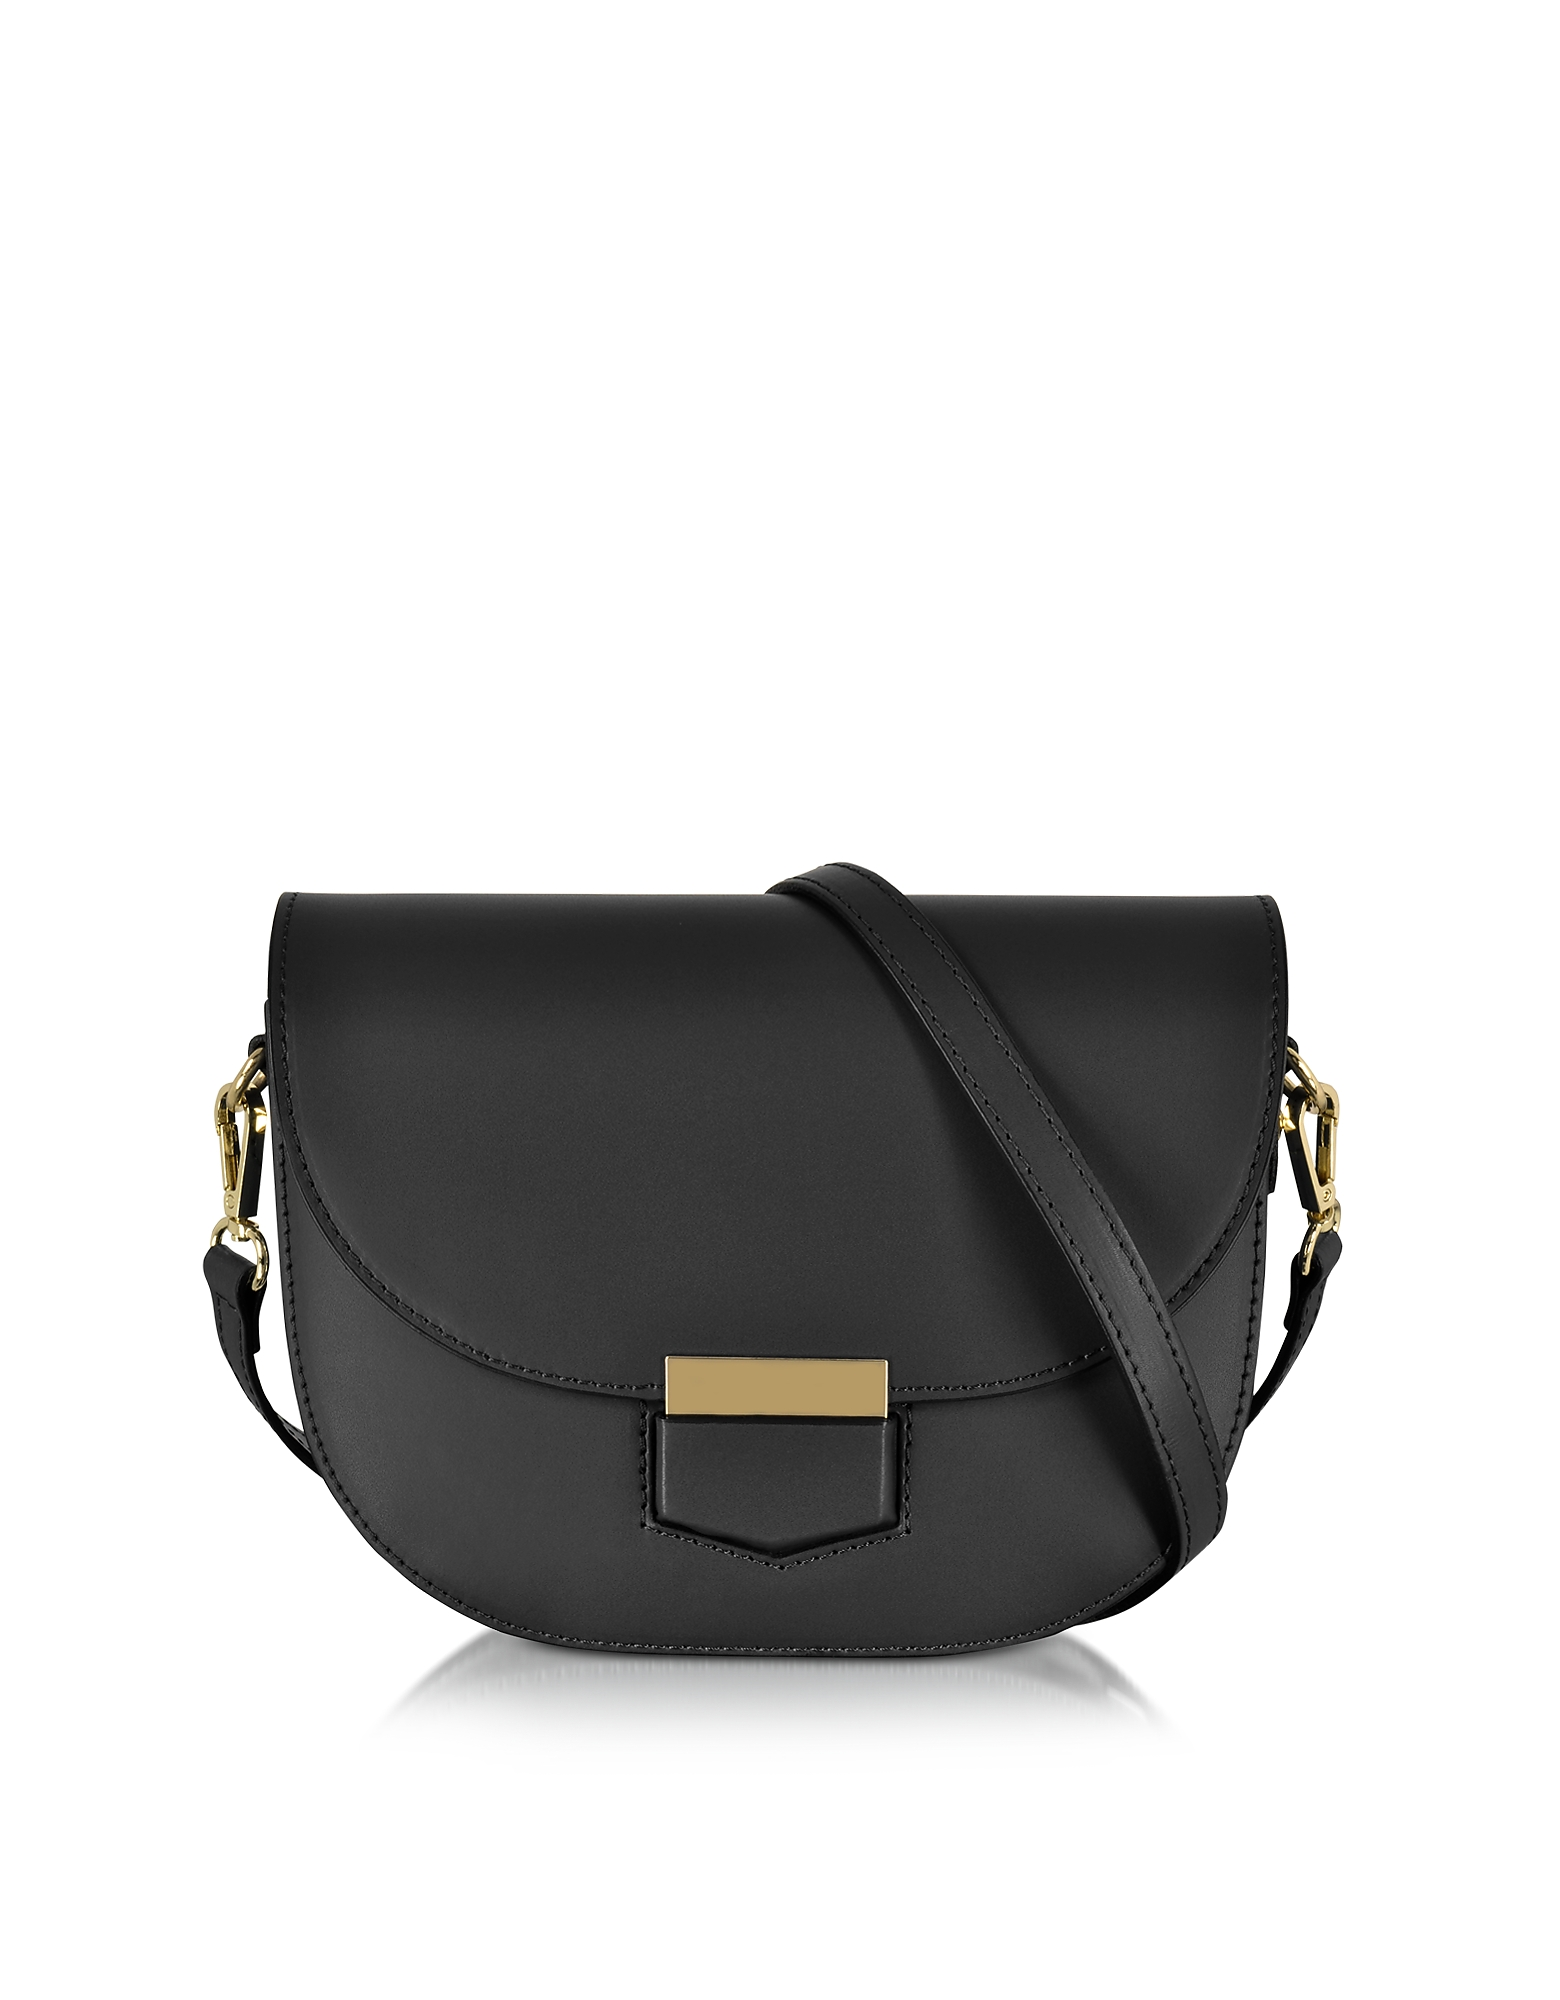 Clio Smooth Leather Flap Shoulder Bag